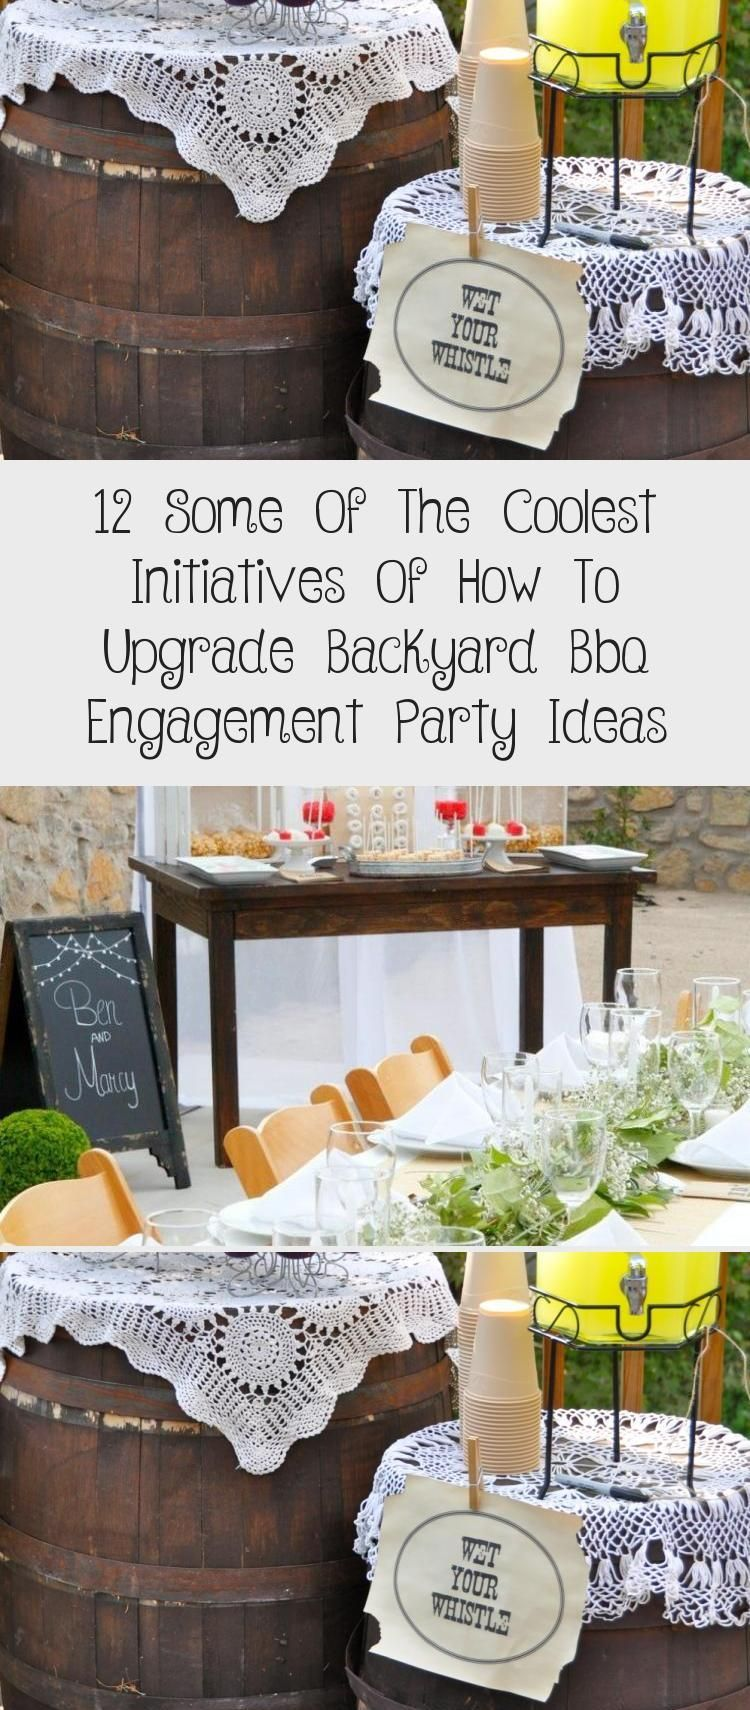 12 Some Of The Coolest Initiatives Of How To Upgrade Backyard Bbq Engagement Party Ideas - WEDDING #engagementpartyideasdecorations 12 Some of the Coolest Initiatives of How to Upgrade Backyard Bbq Engagement Party Ideas #Homedecorlove #bohoweddingCeremony #bohoweddingJewelry #Summerbohowedding #bohoweddingInvites #bohoweddingDecorations